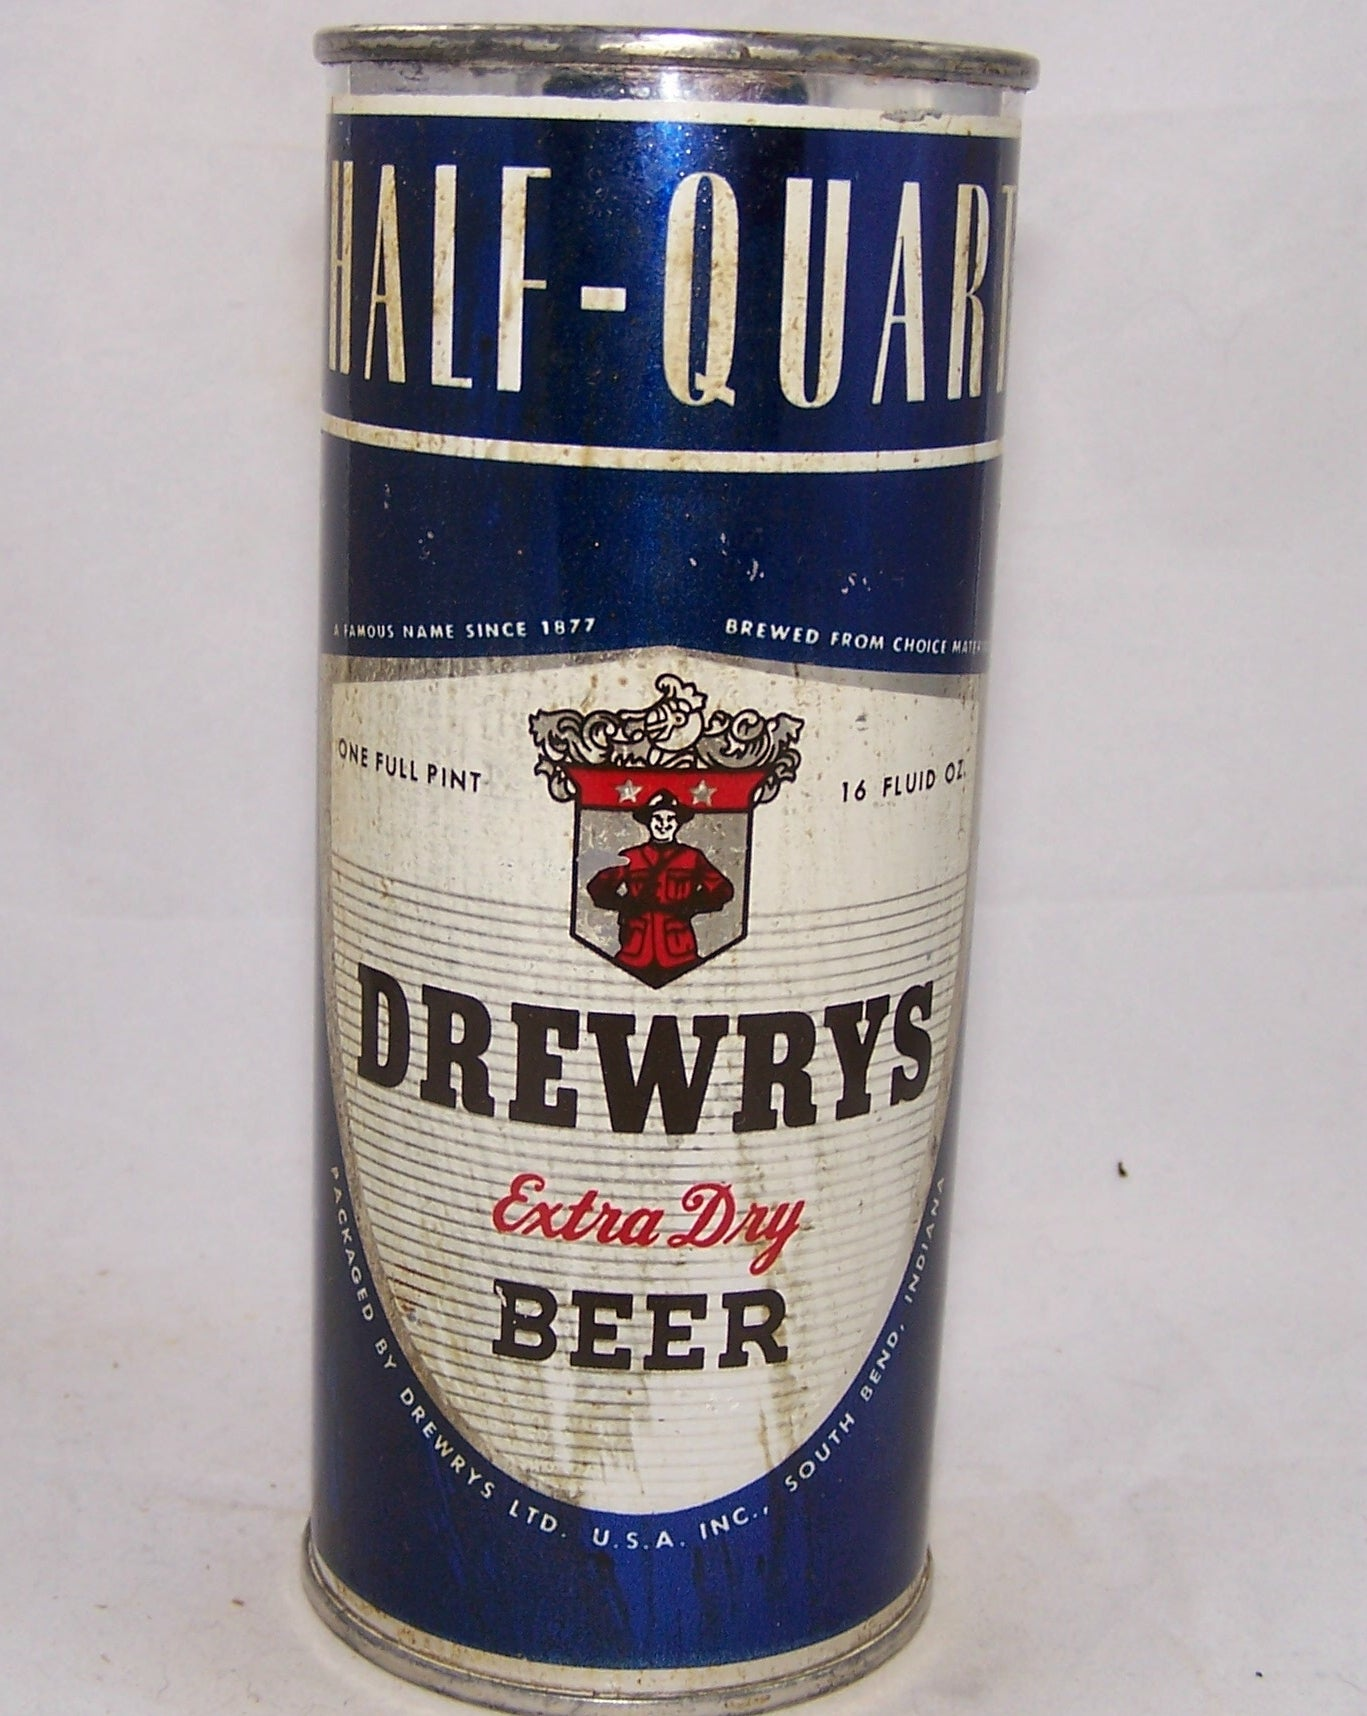 Drewrys Your Character Extra Dry Beer, USBC 228-9, Grade 1-